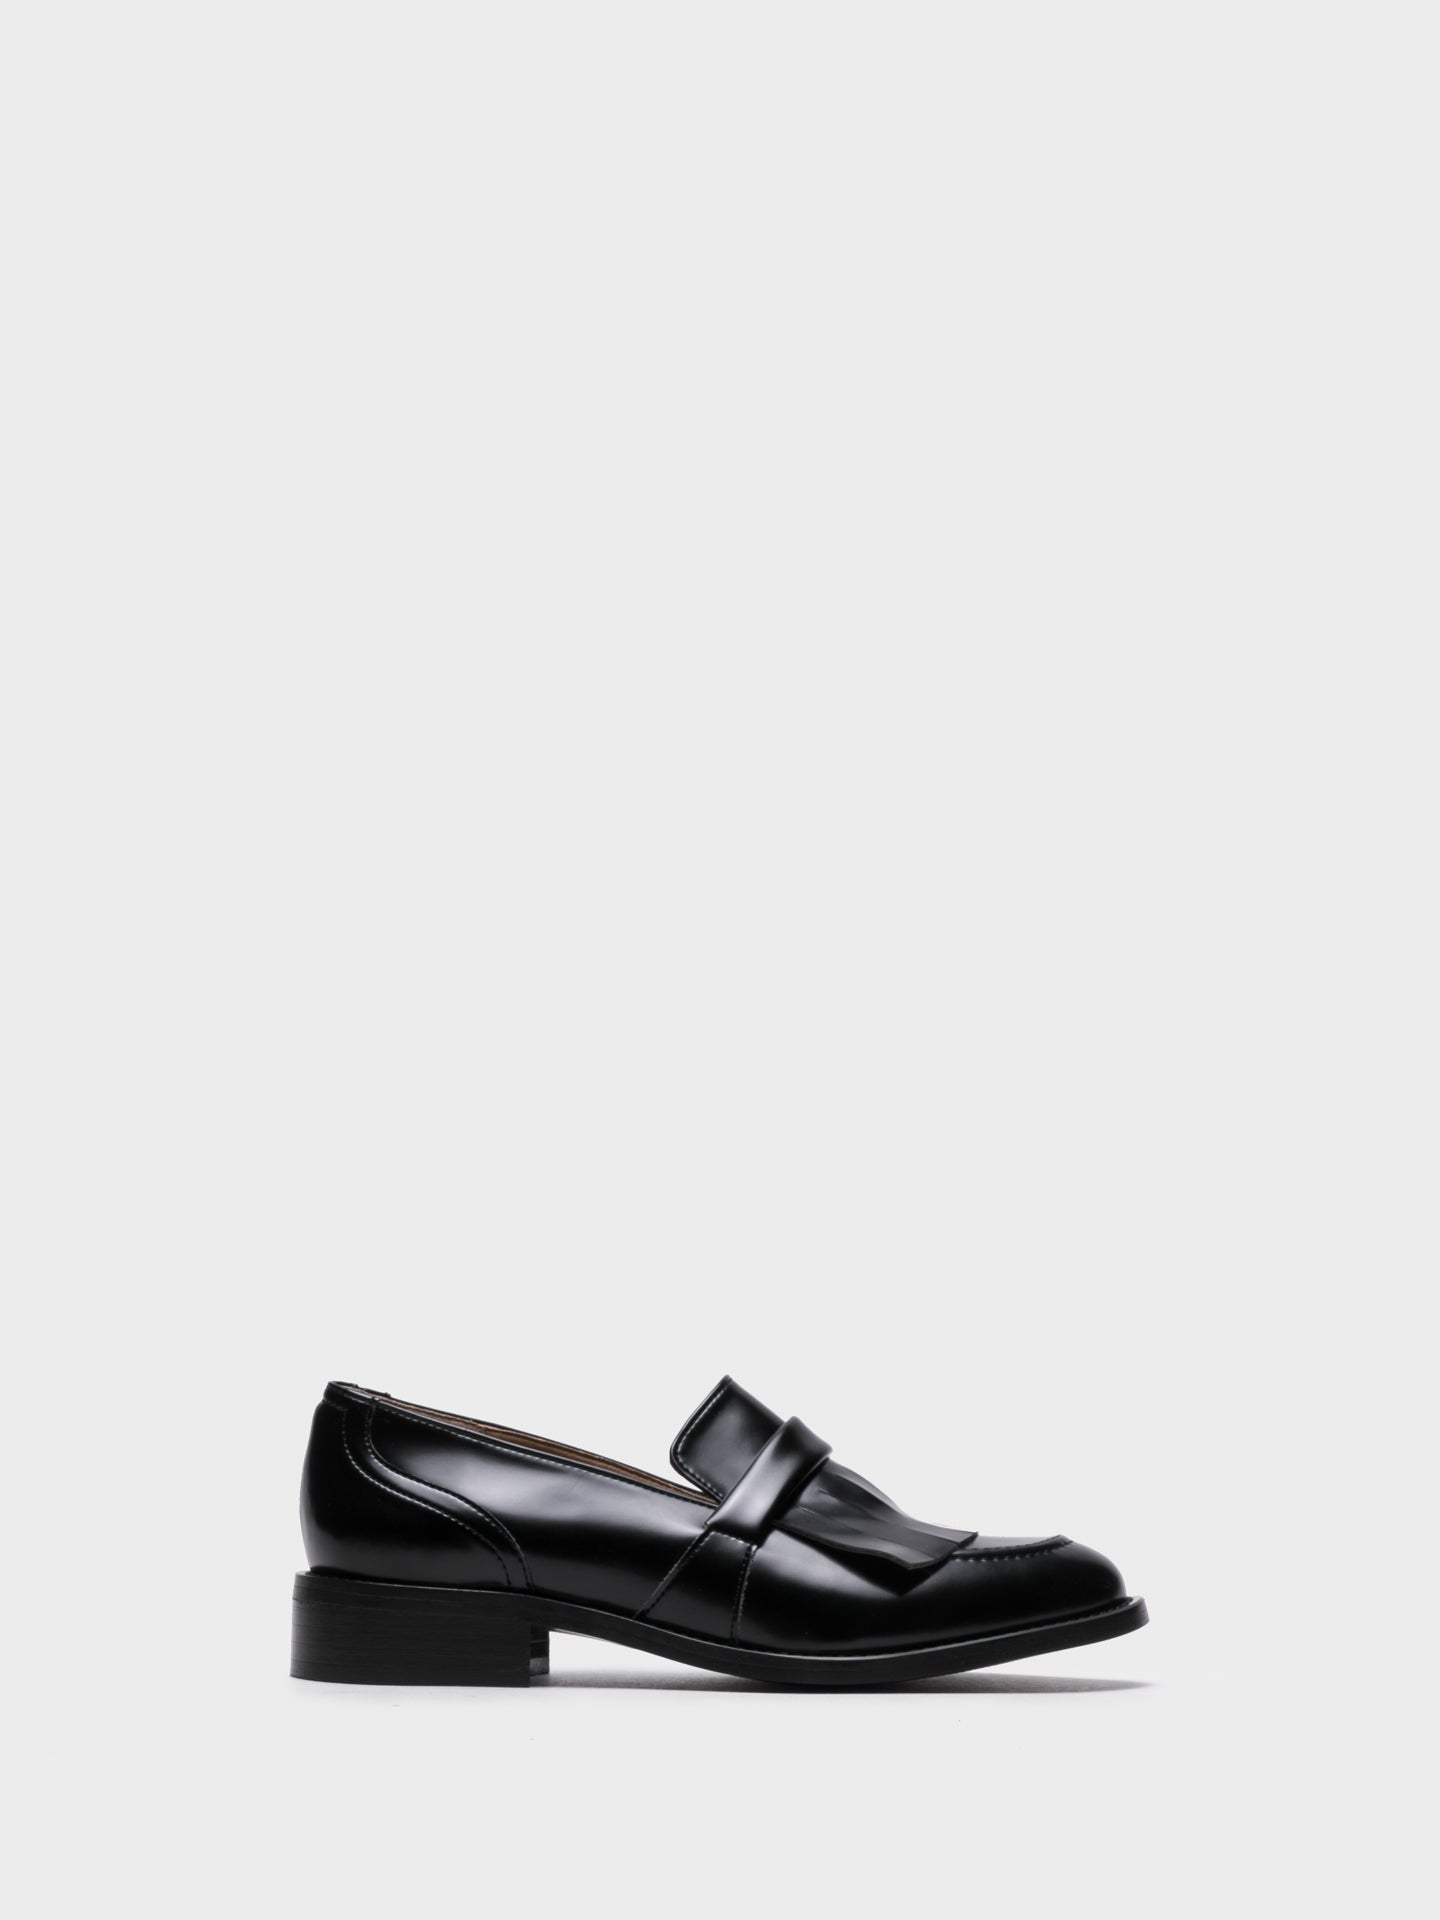 NAE Black Loafers Shoes